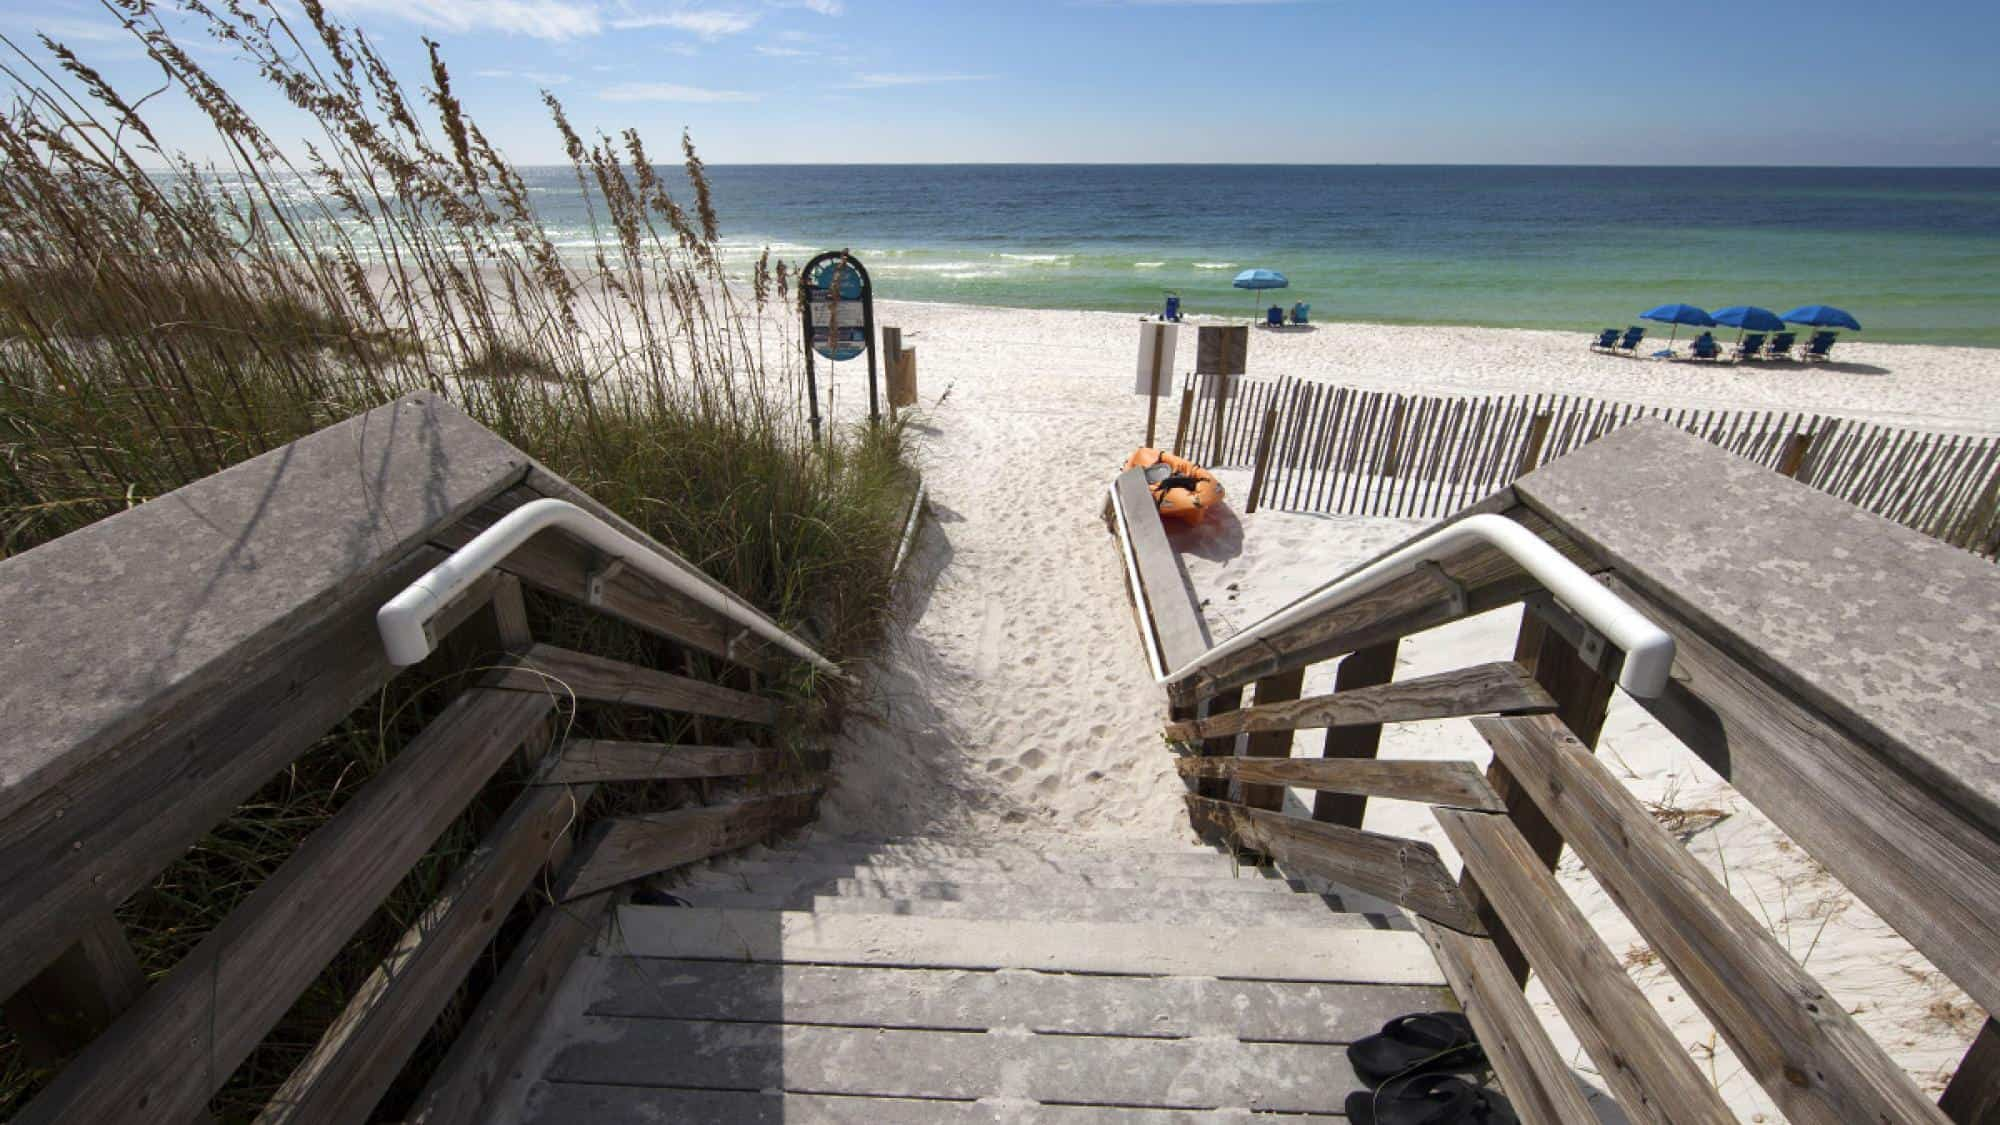 Inlet Beach, Santa Rosa Florida, Santa Rosa Beaches, Emerald Coast beaches